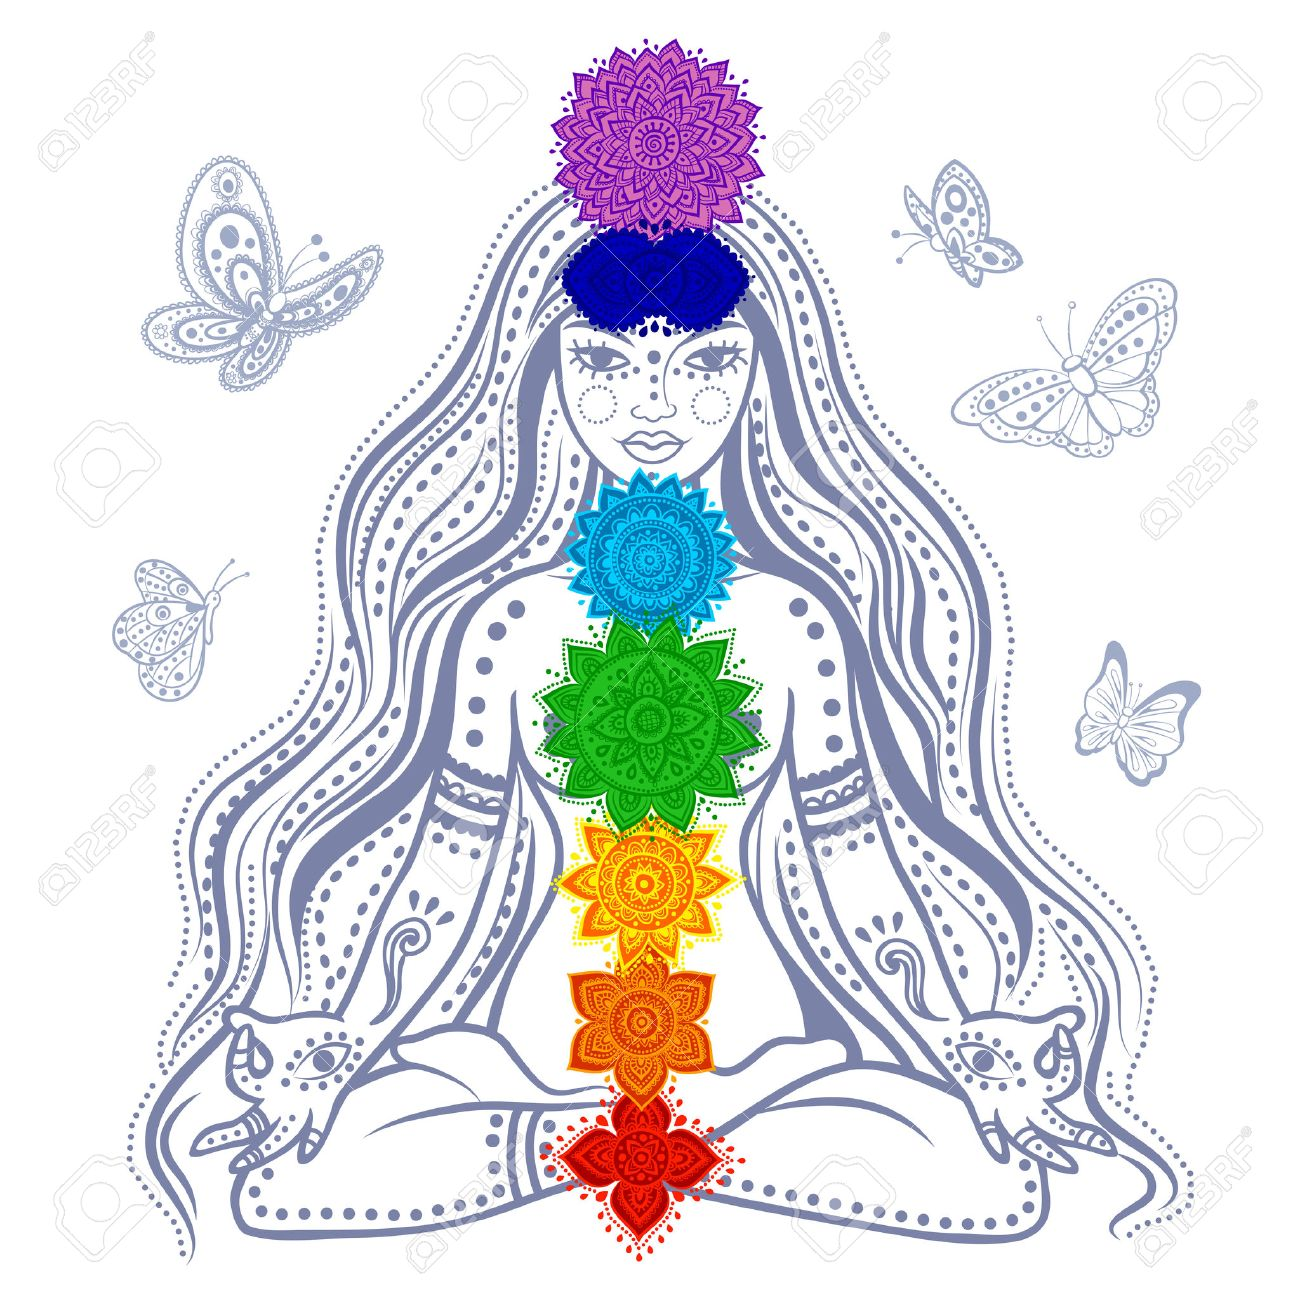 Illustration of a Girl with 7 chakras and butterflies Stock Vector - 26526006